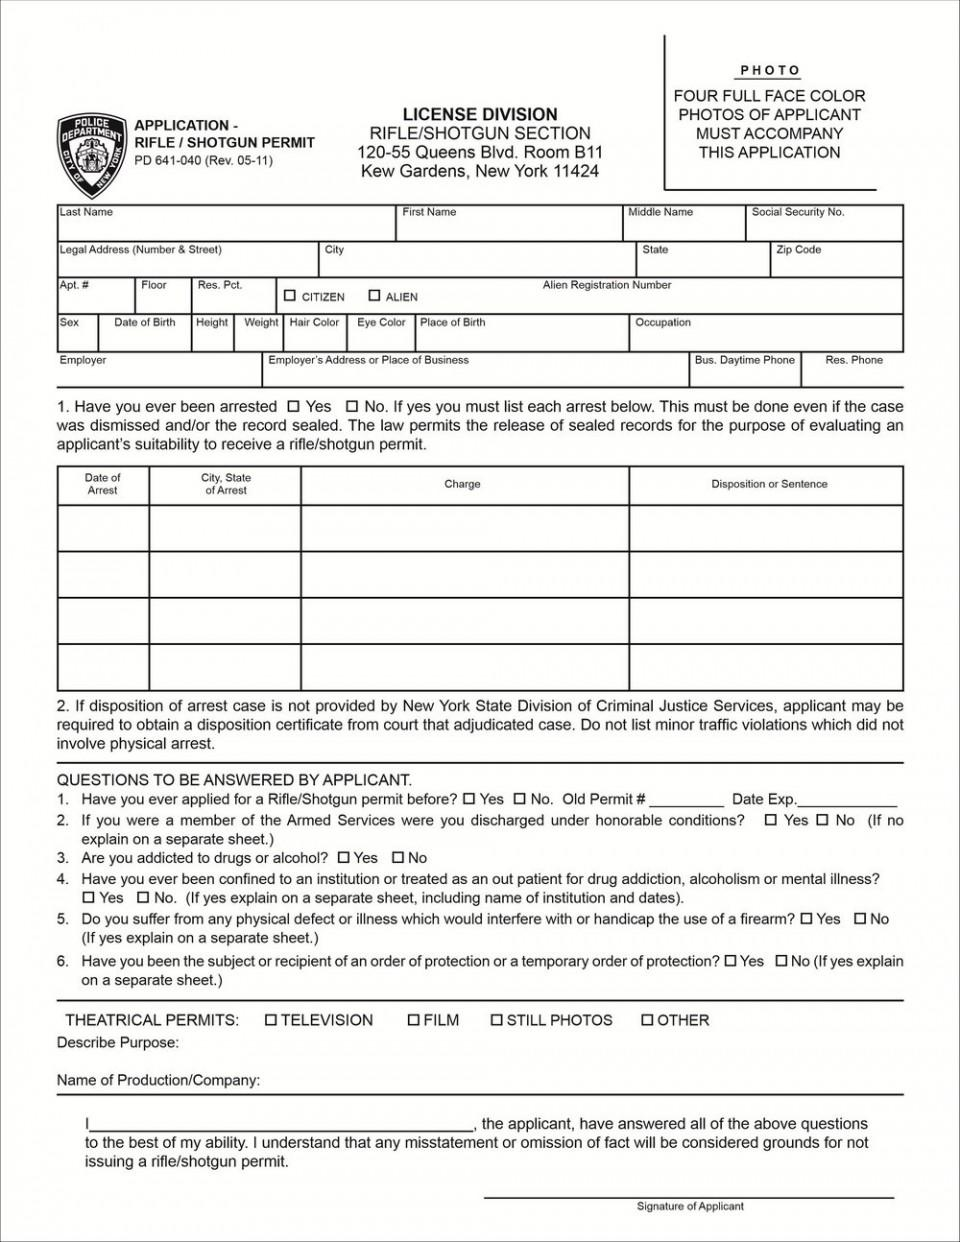 Indian Visa Application Form Download Singapore